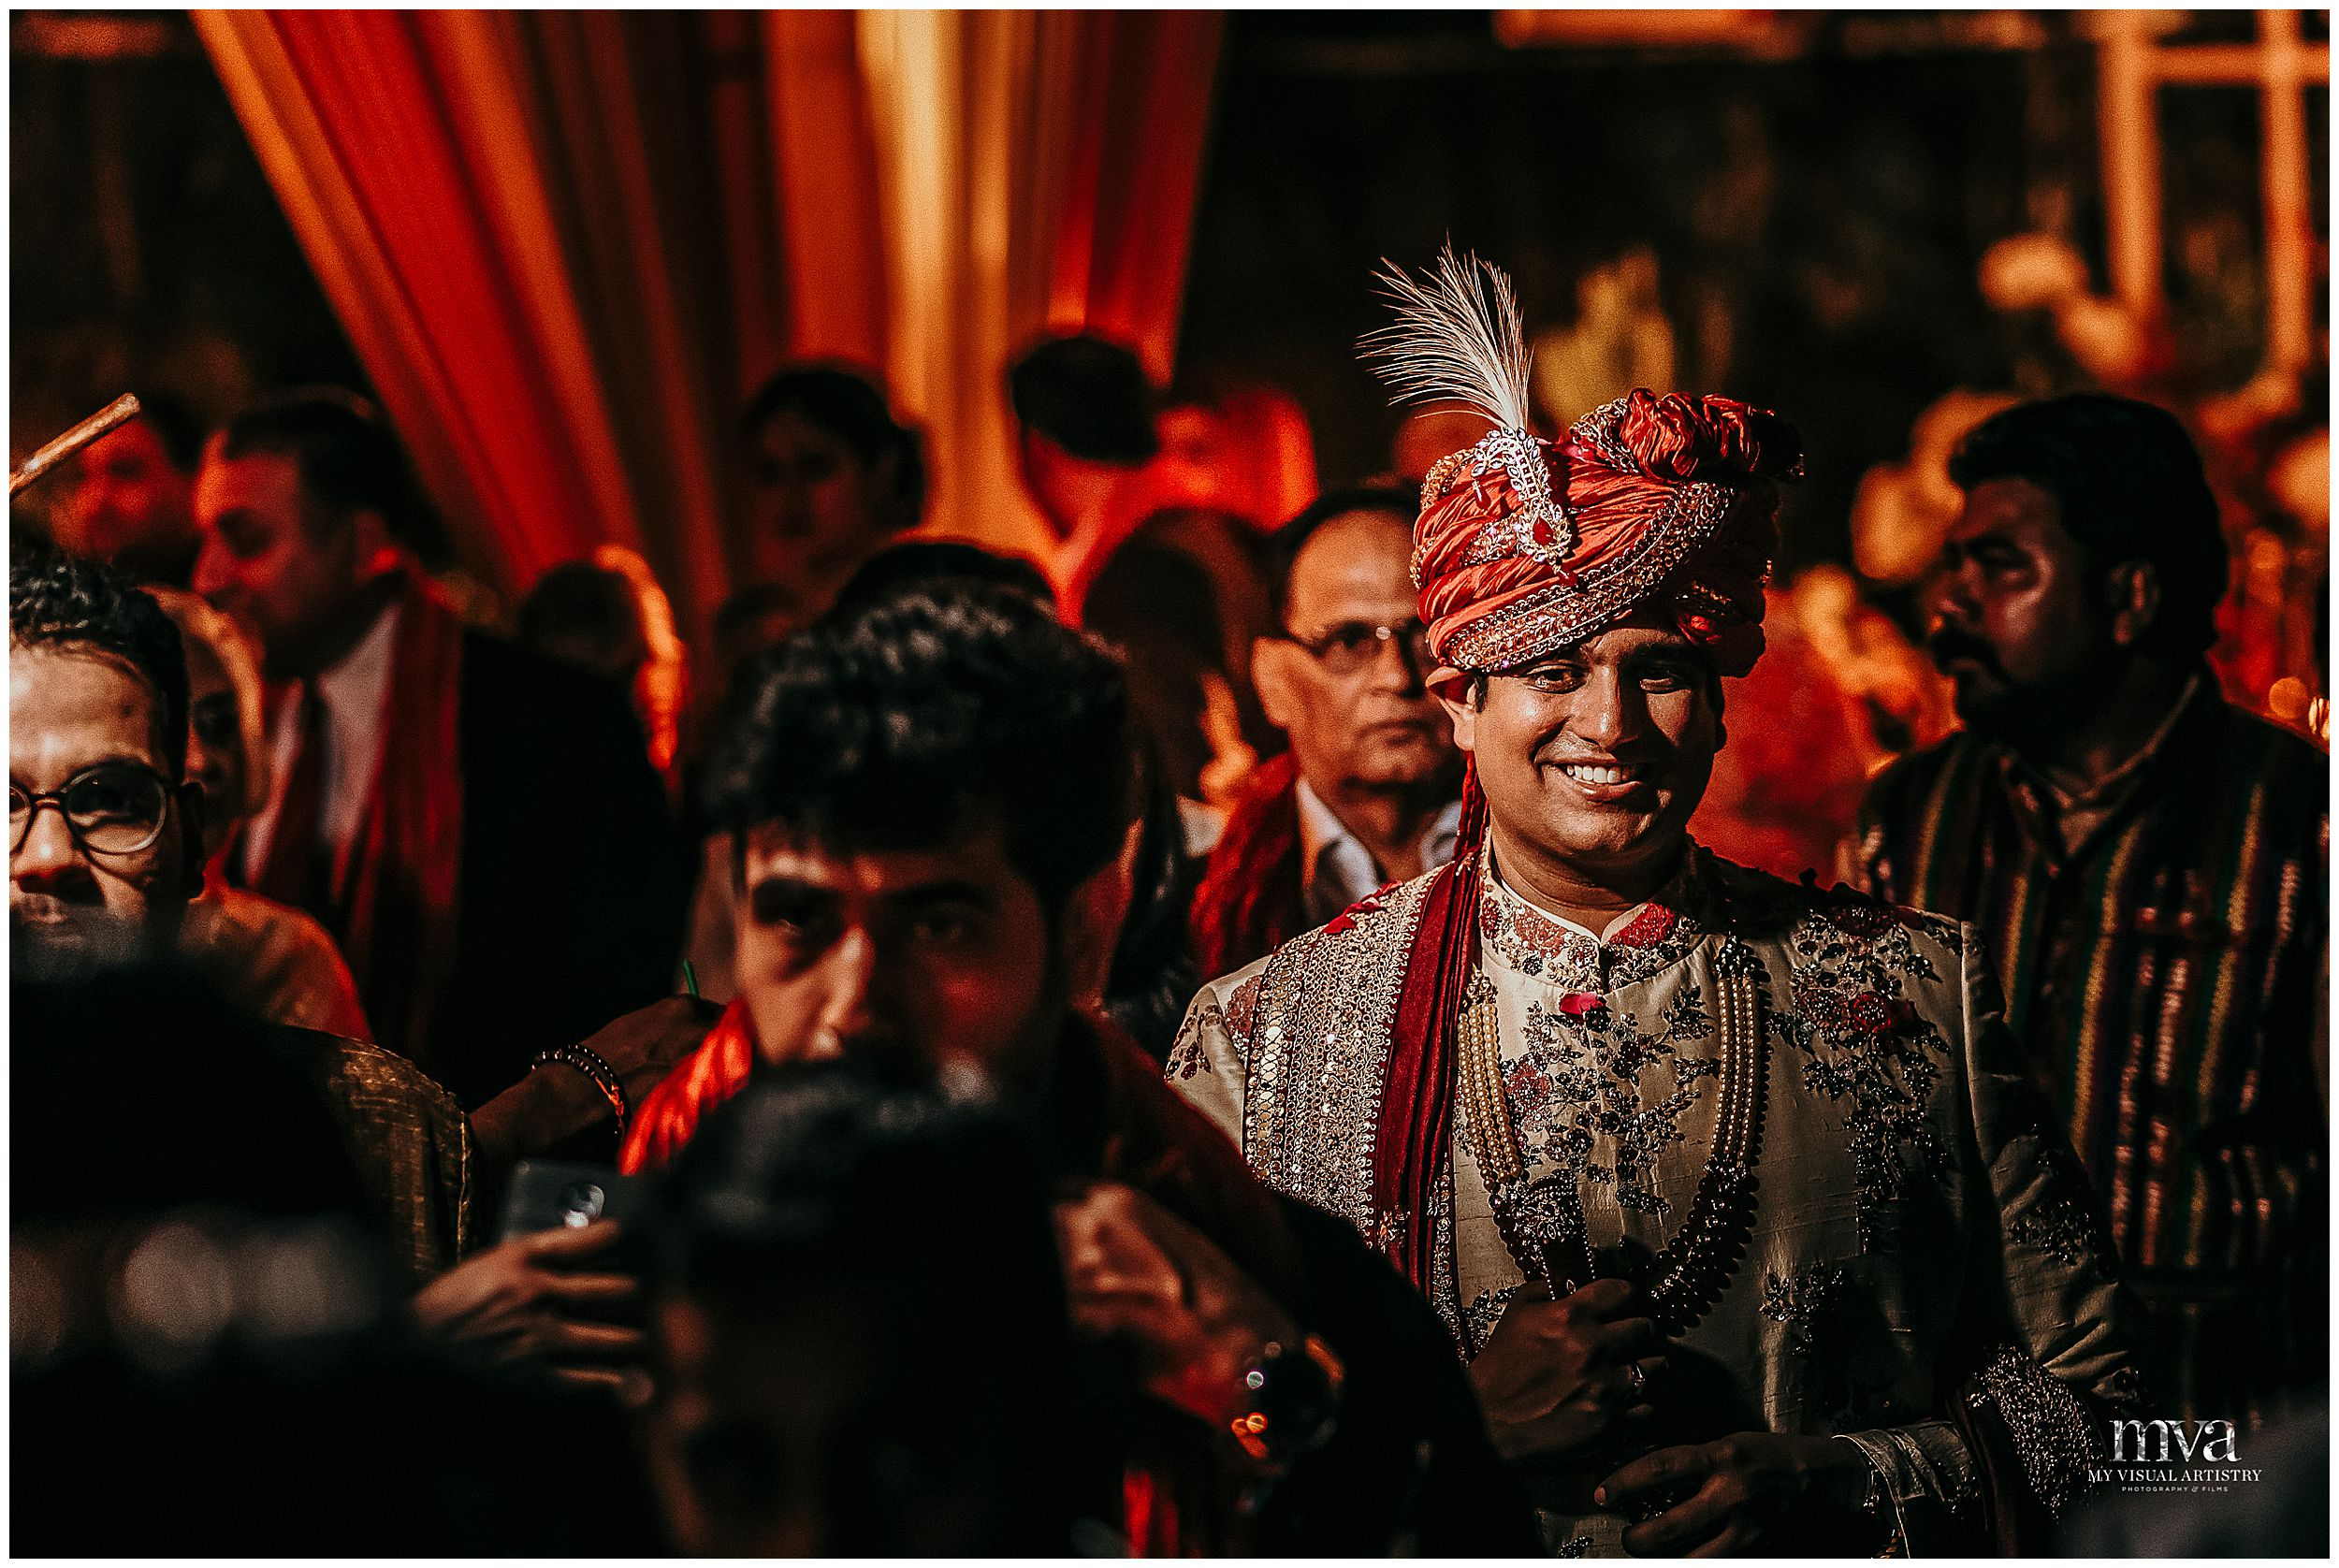 SIDDARTH_SAKSHI_MYVISUALARTISTRY_WEDDING_PHOTOGRAPHY_MVA_EROSHANGRILA_DELHI_0030.jpg